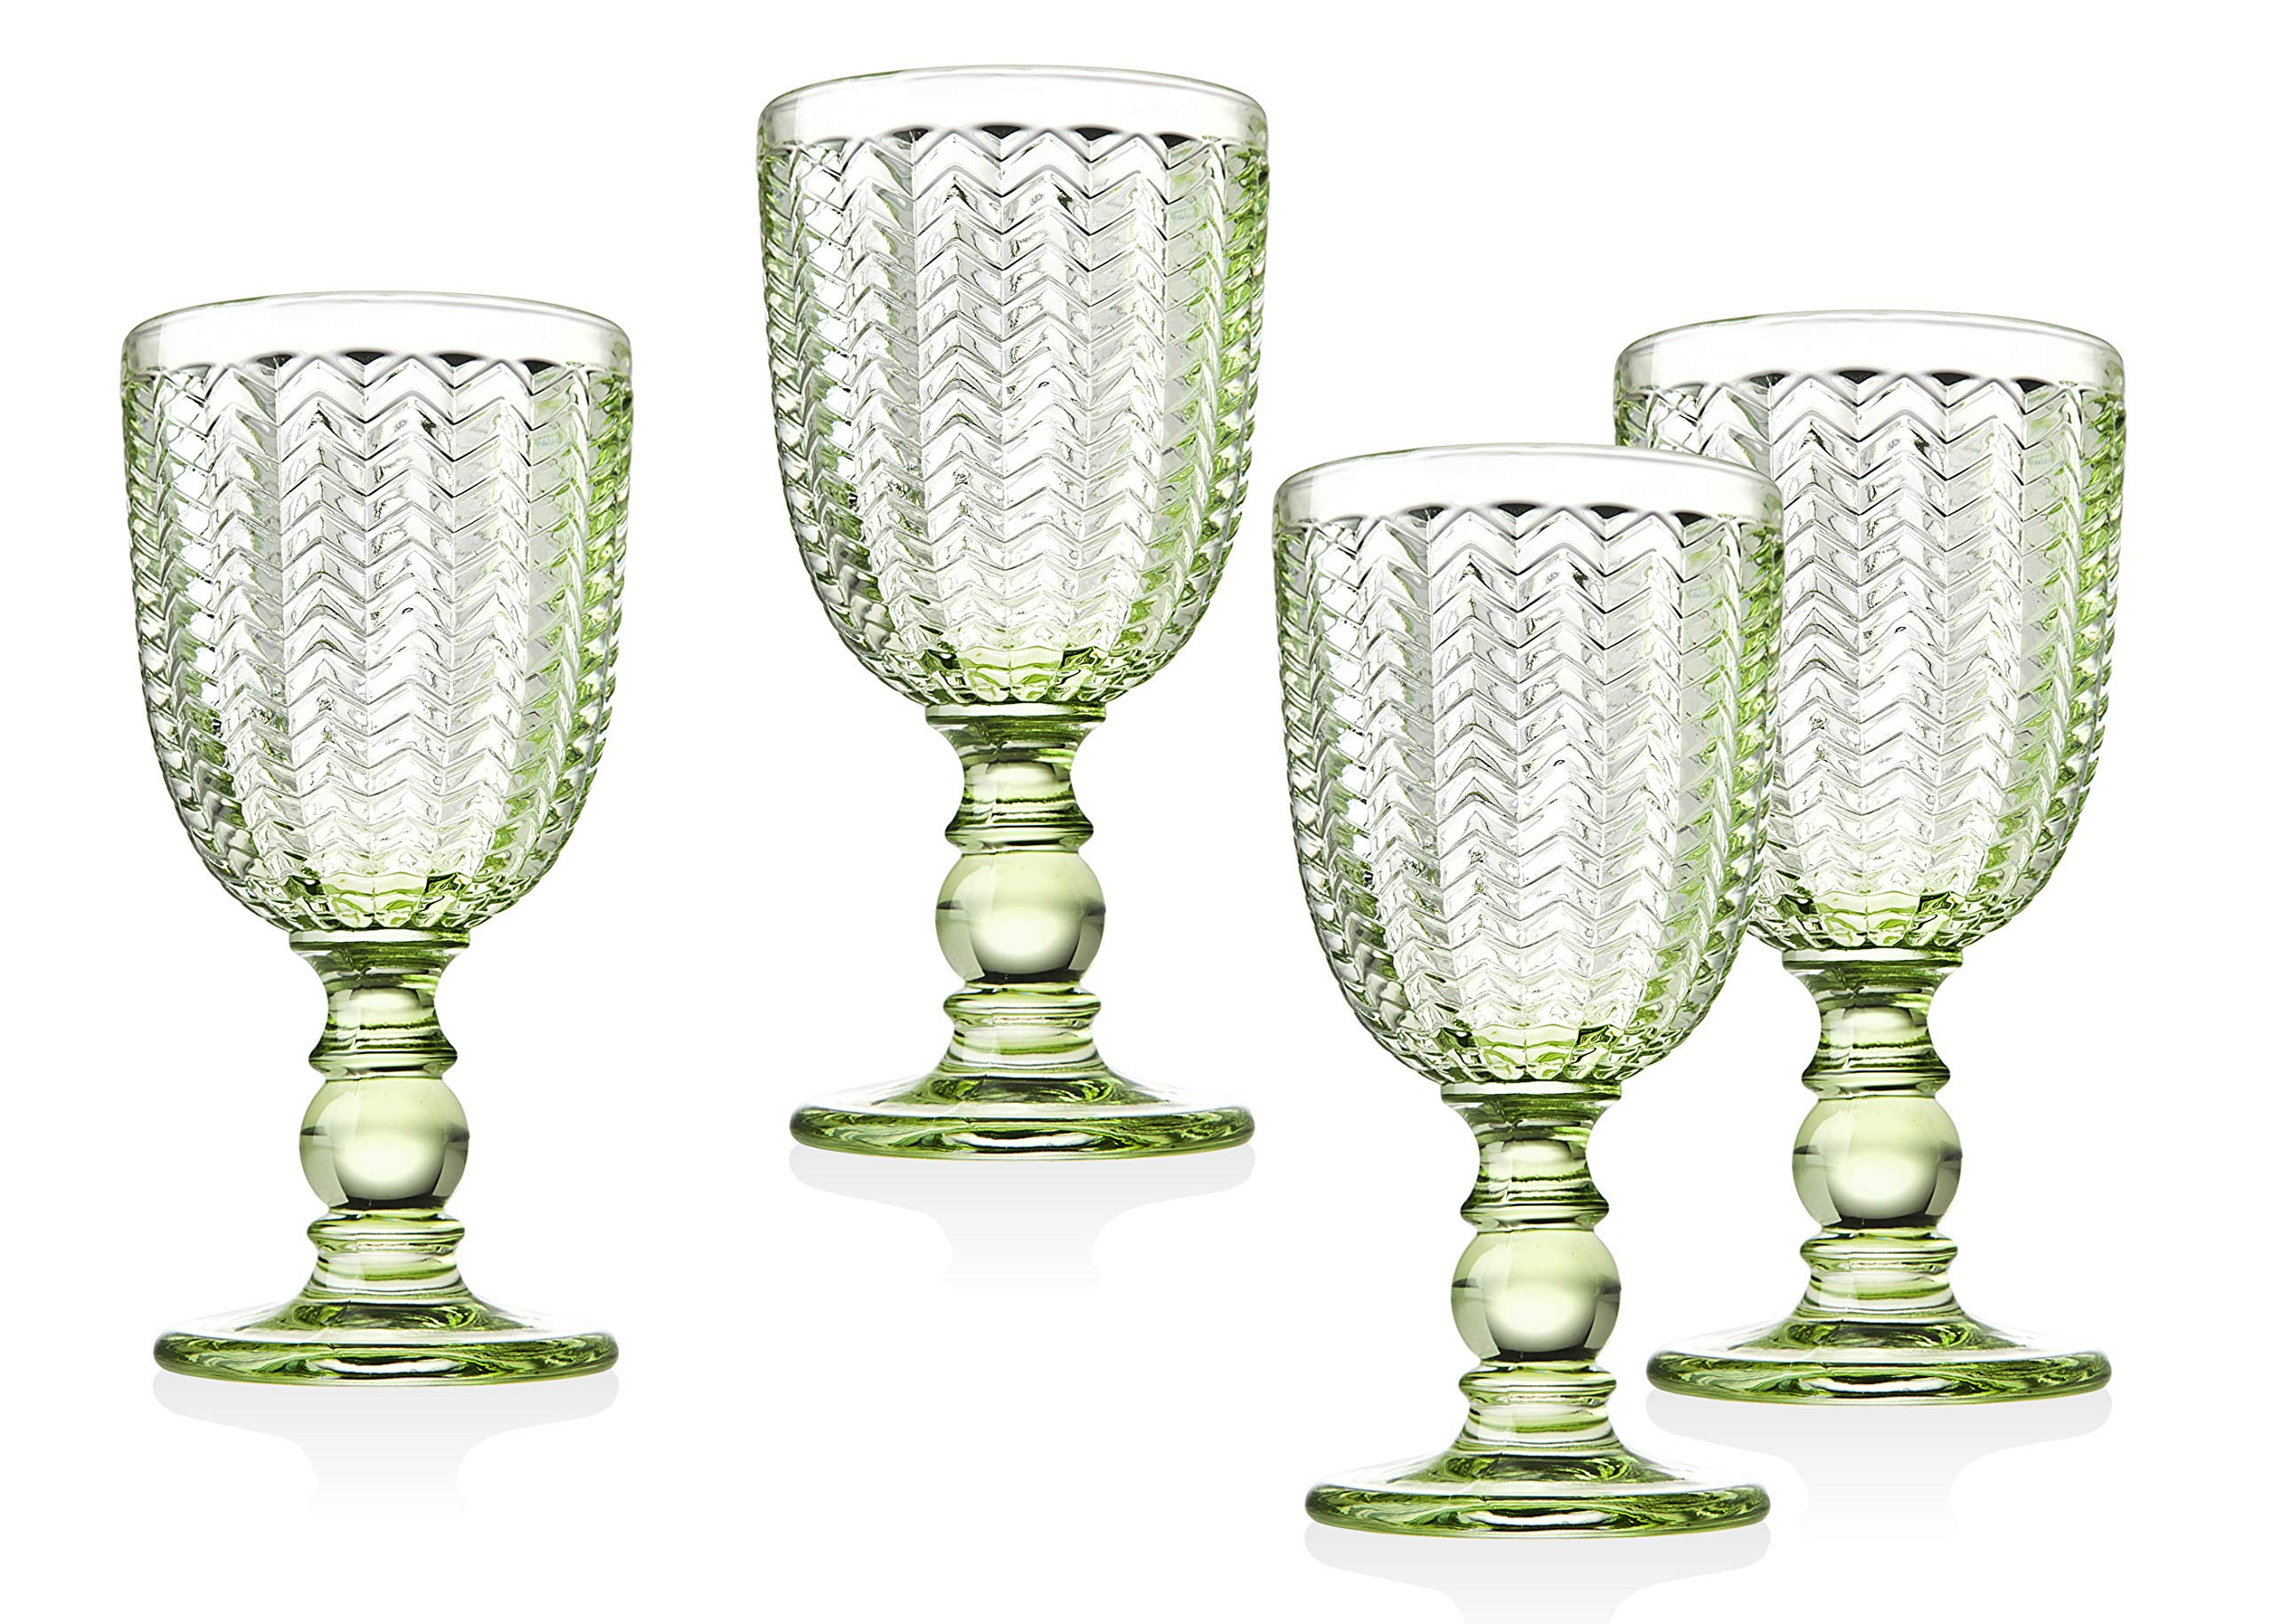 Twill Red Wine Goblet Beverage Glass Cup by Godinger - Emerald Green - Set of 4